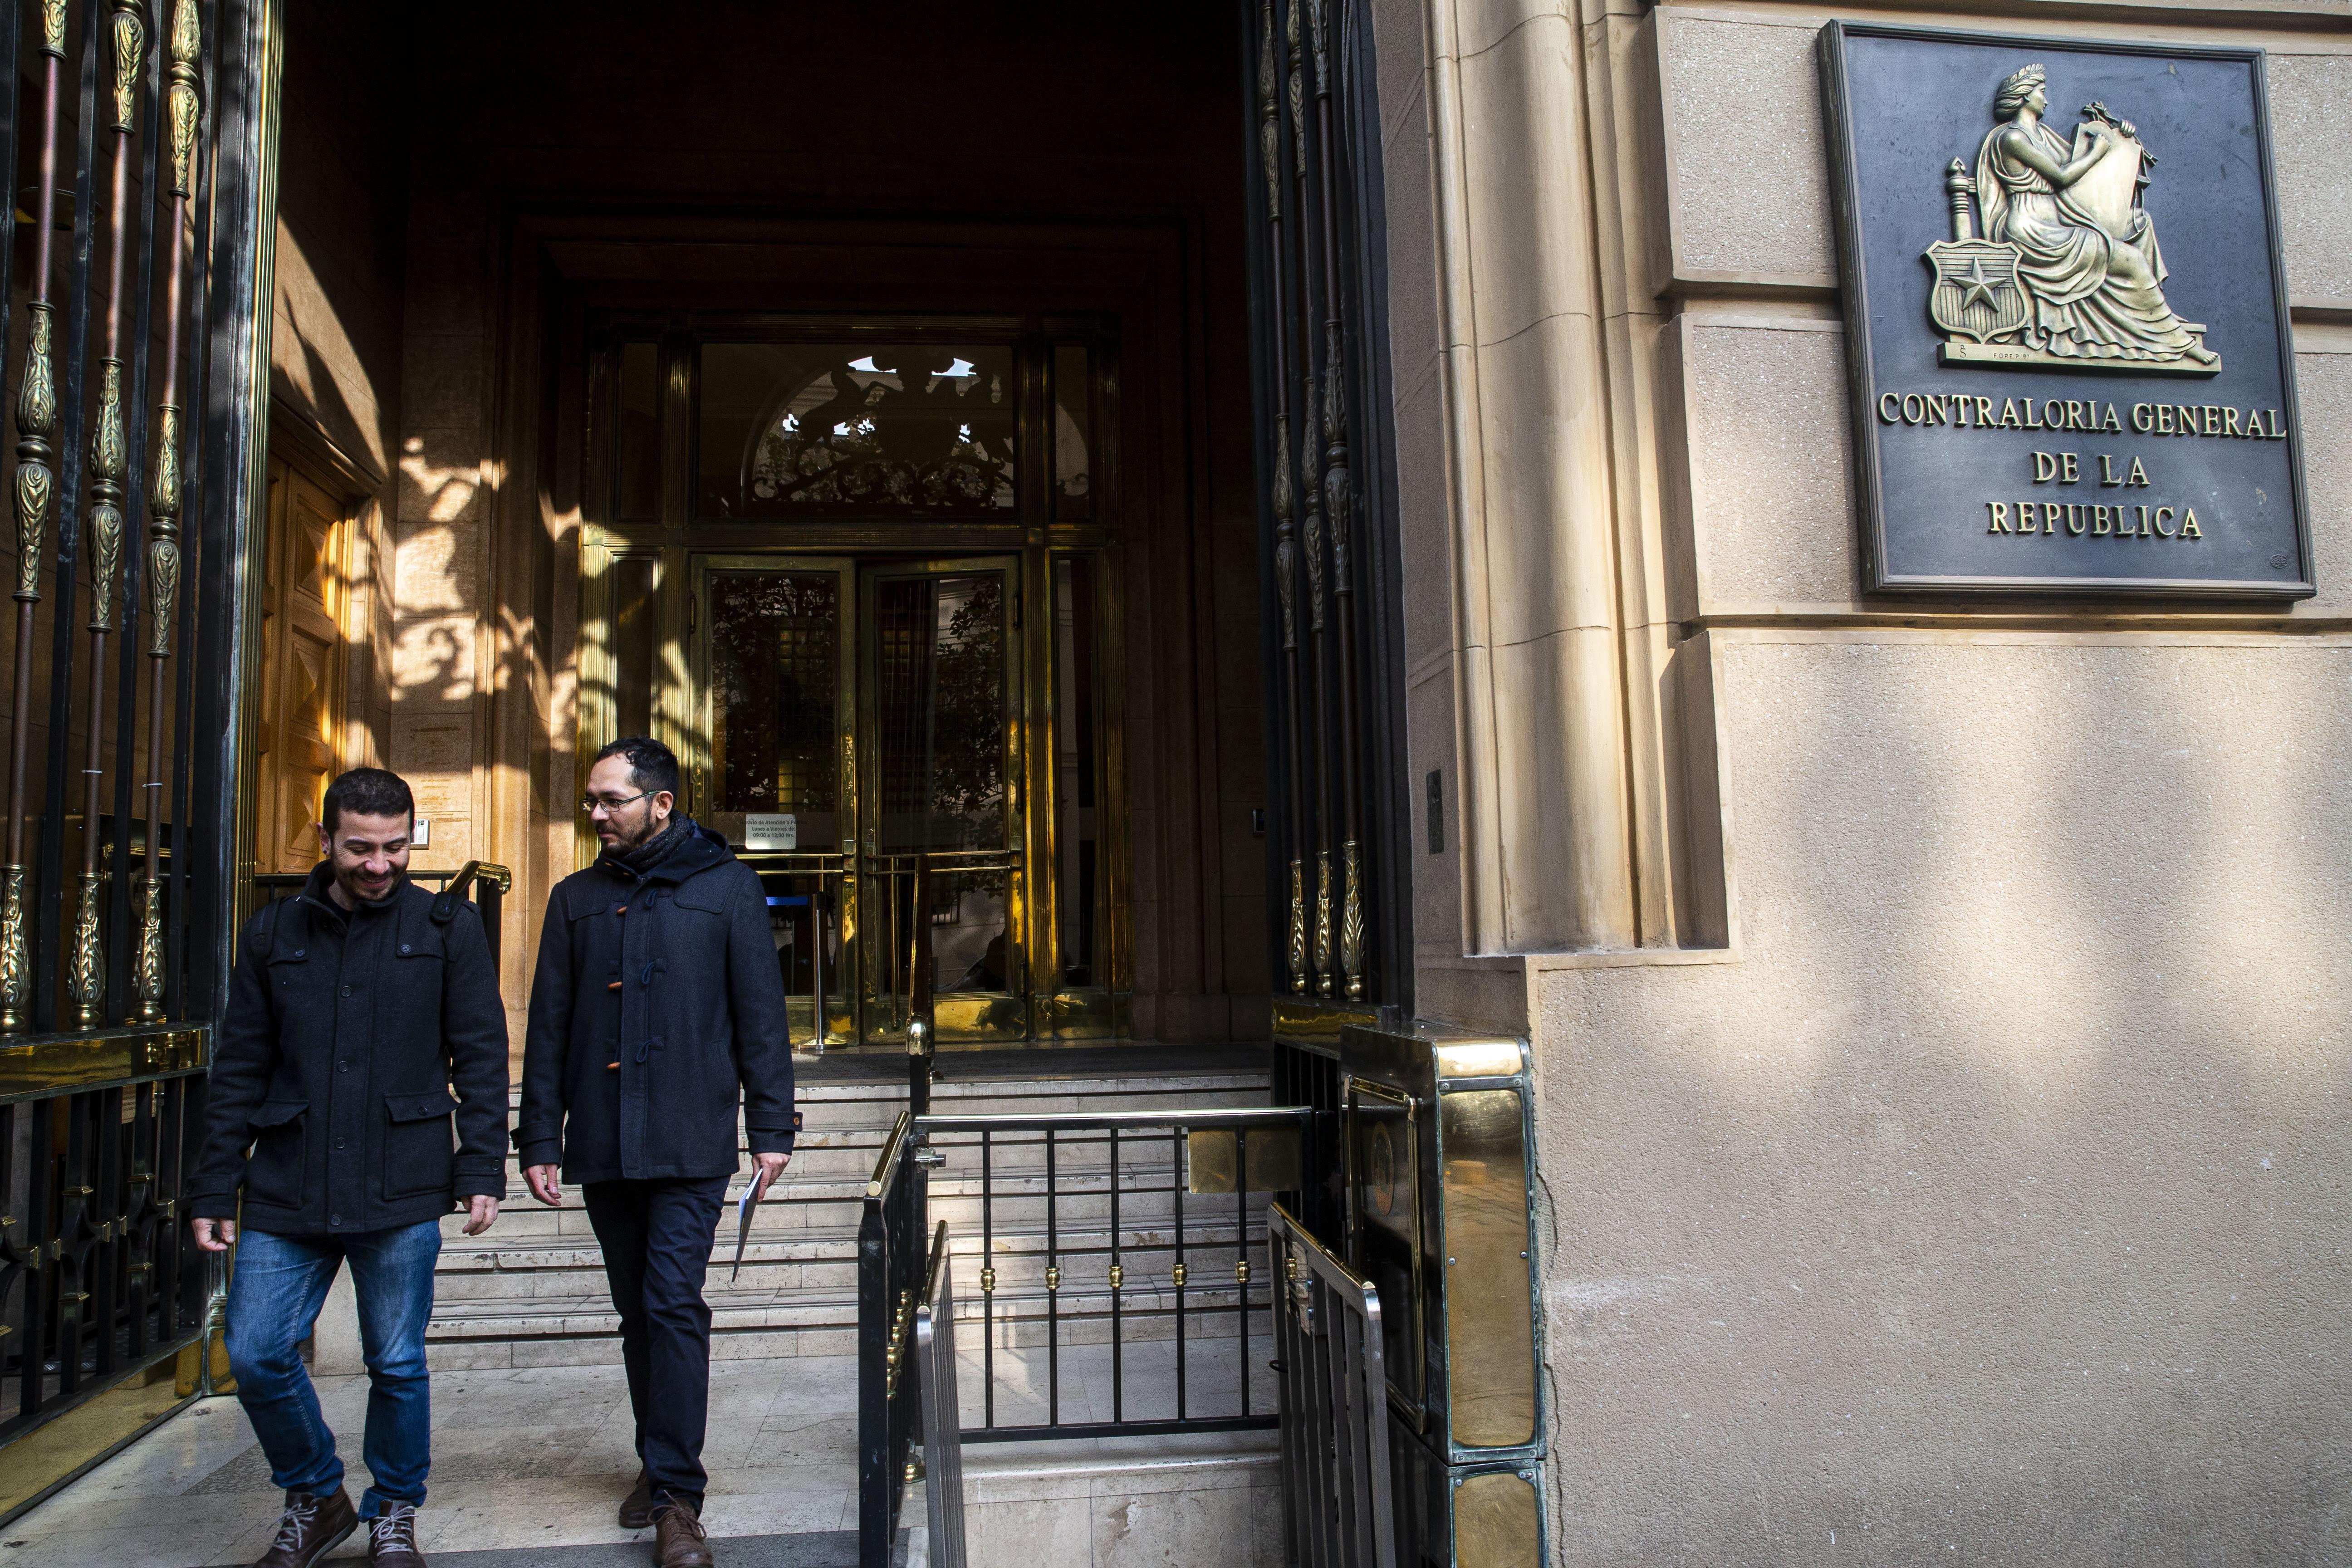 Gonzalo Velasquez, right, and Ramon Gomez, leaders of Chile's Homosexual Integration and Liberation Movement, leave the comptroller general office after presenting an accusation against the government for breaching a same-sex marriage agreement in 2016 with the Inter-American Commission on Human Rights in Santiago, Chile, Tuesday, Sept. 10, 2019. Two groups have formally asked the South American country's controller-general to require President Sebastián Piñera's government to promote a measure in congress to legalize same-sex marriage. (AP Photo/Esteban Felix)